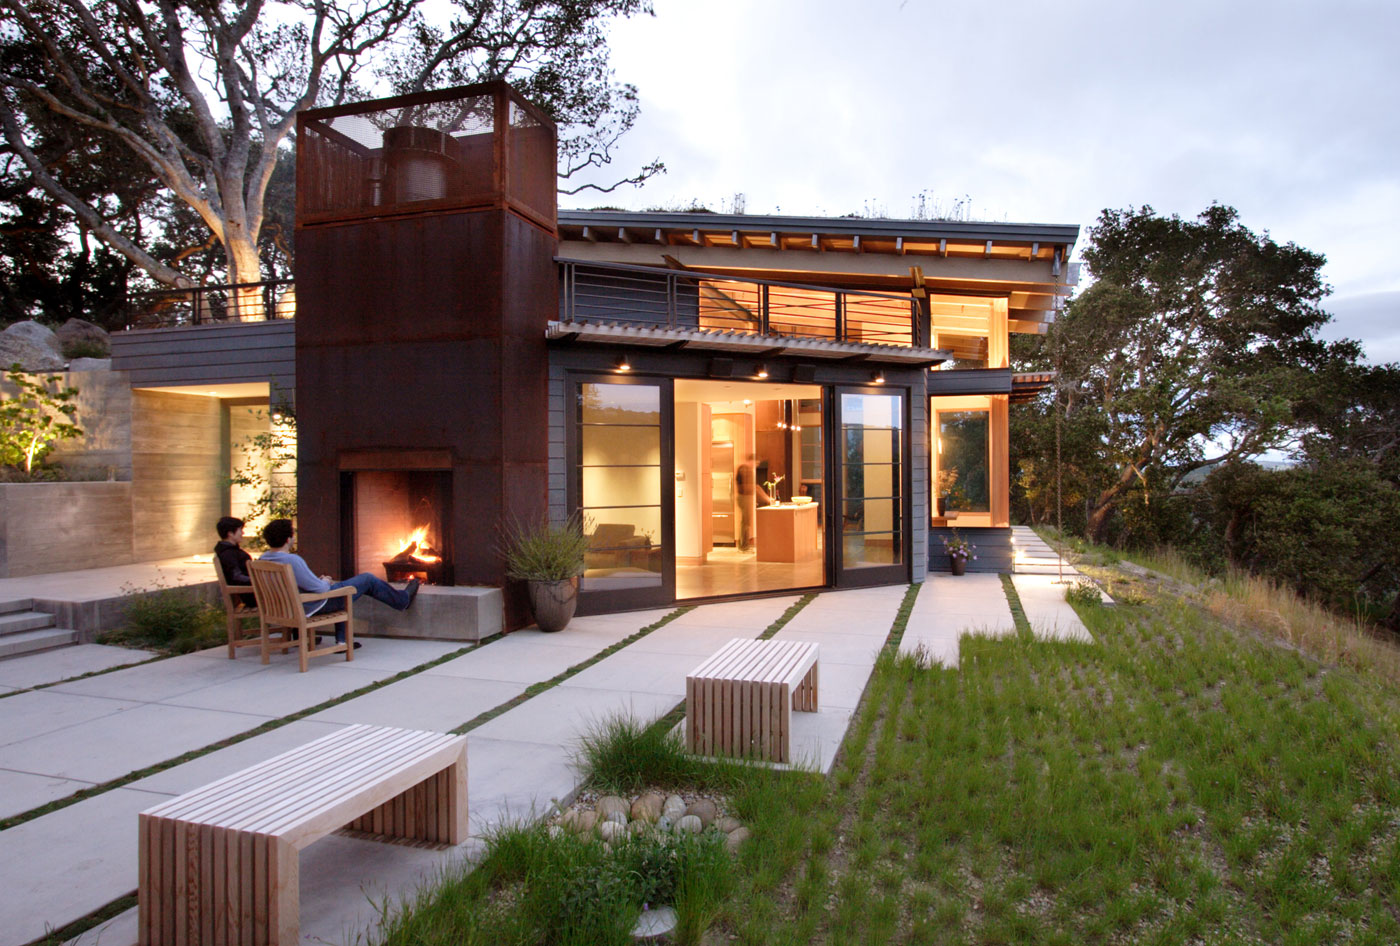 Sustainable house ocho by feldman architecture for Looking for an architect to design a house